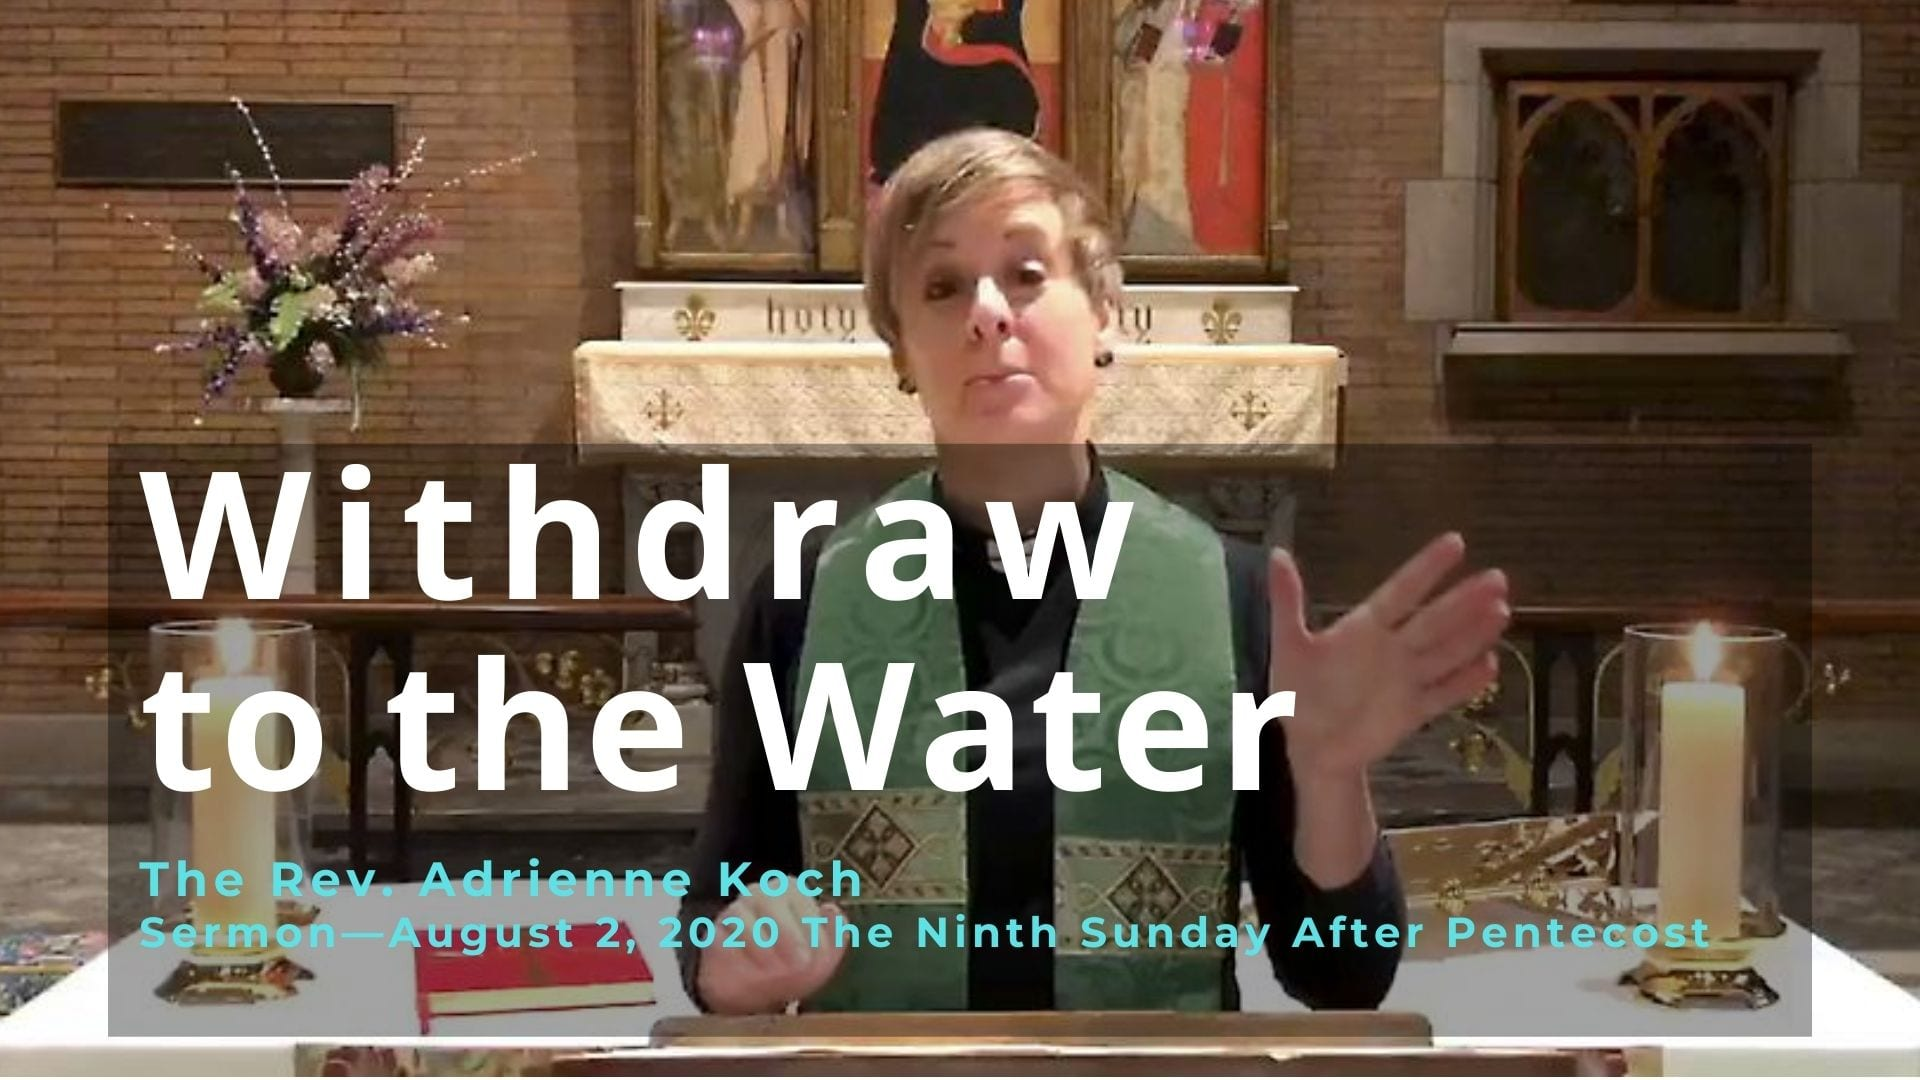 Sermon Podcast: Withdraw to the Water